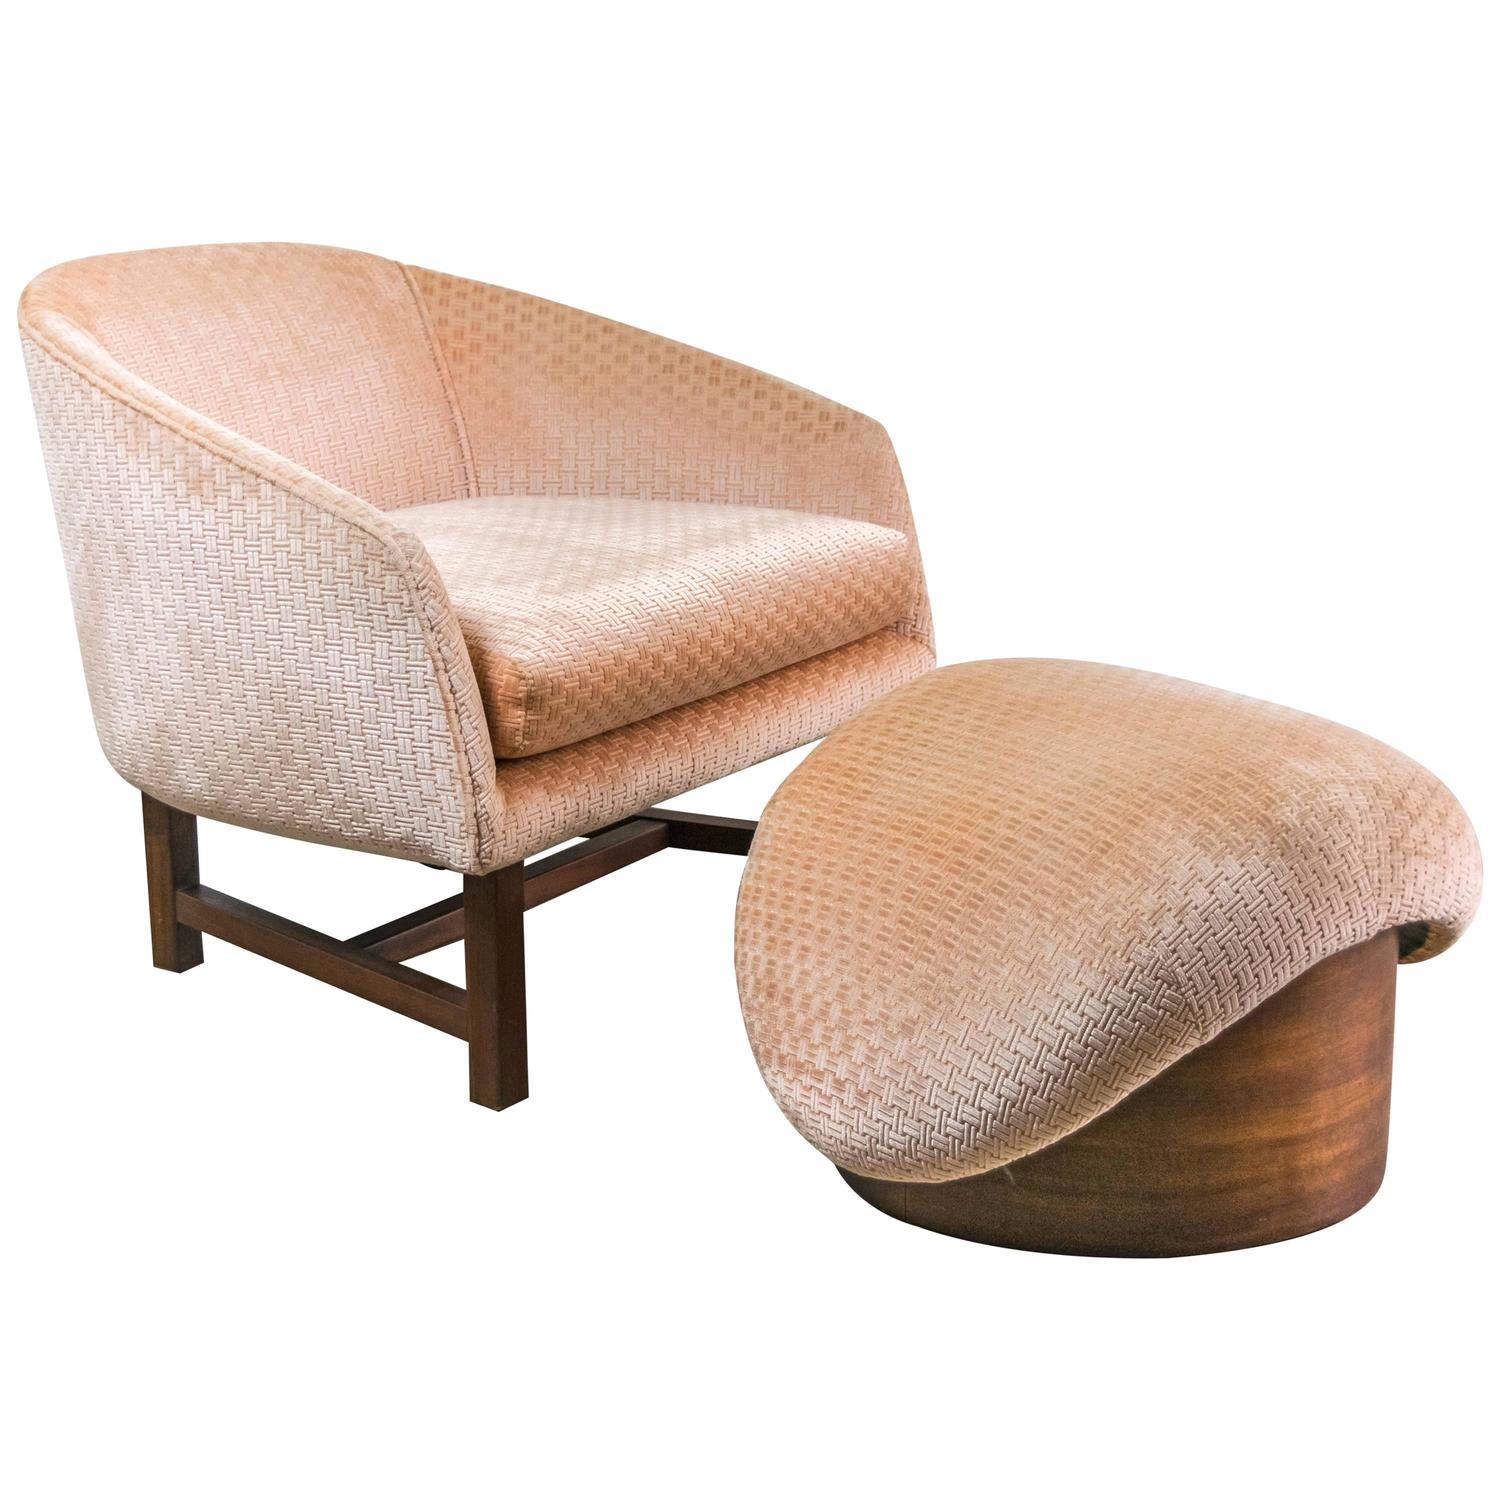 Mid Century Modern Reading Chair and Ottoman at 1stdibs